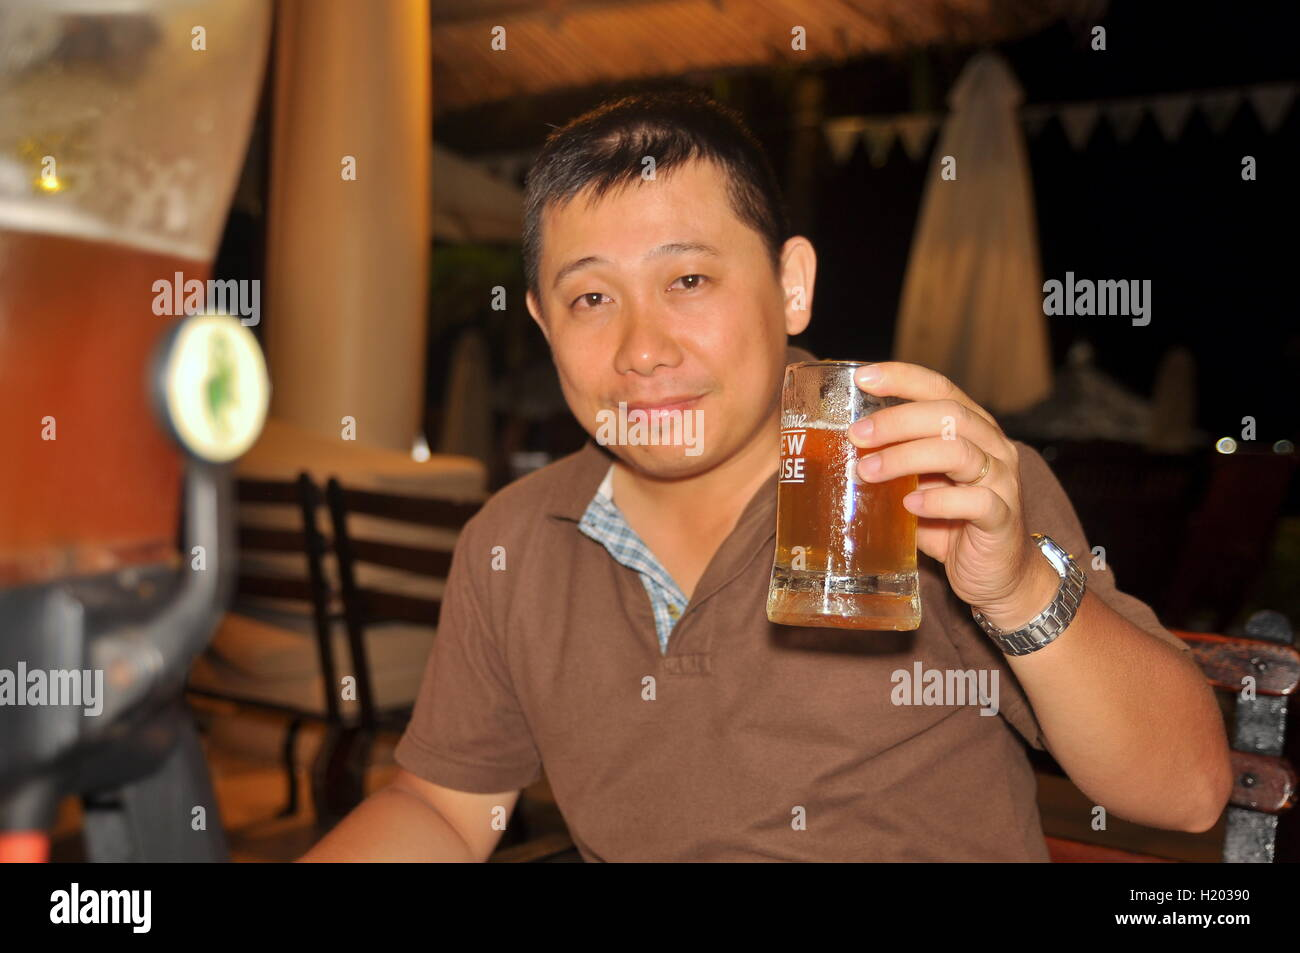 Nha Trang, Vietnam - July 11, 2015: A man is enjoying his glass of cold special beer at the Lousiana brew house - Stock Image